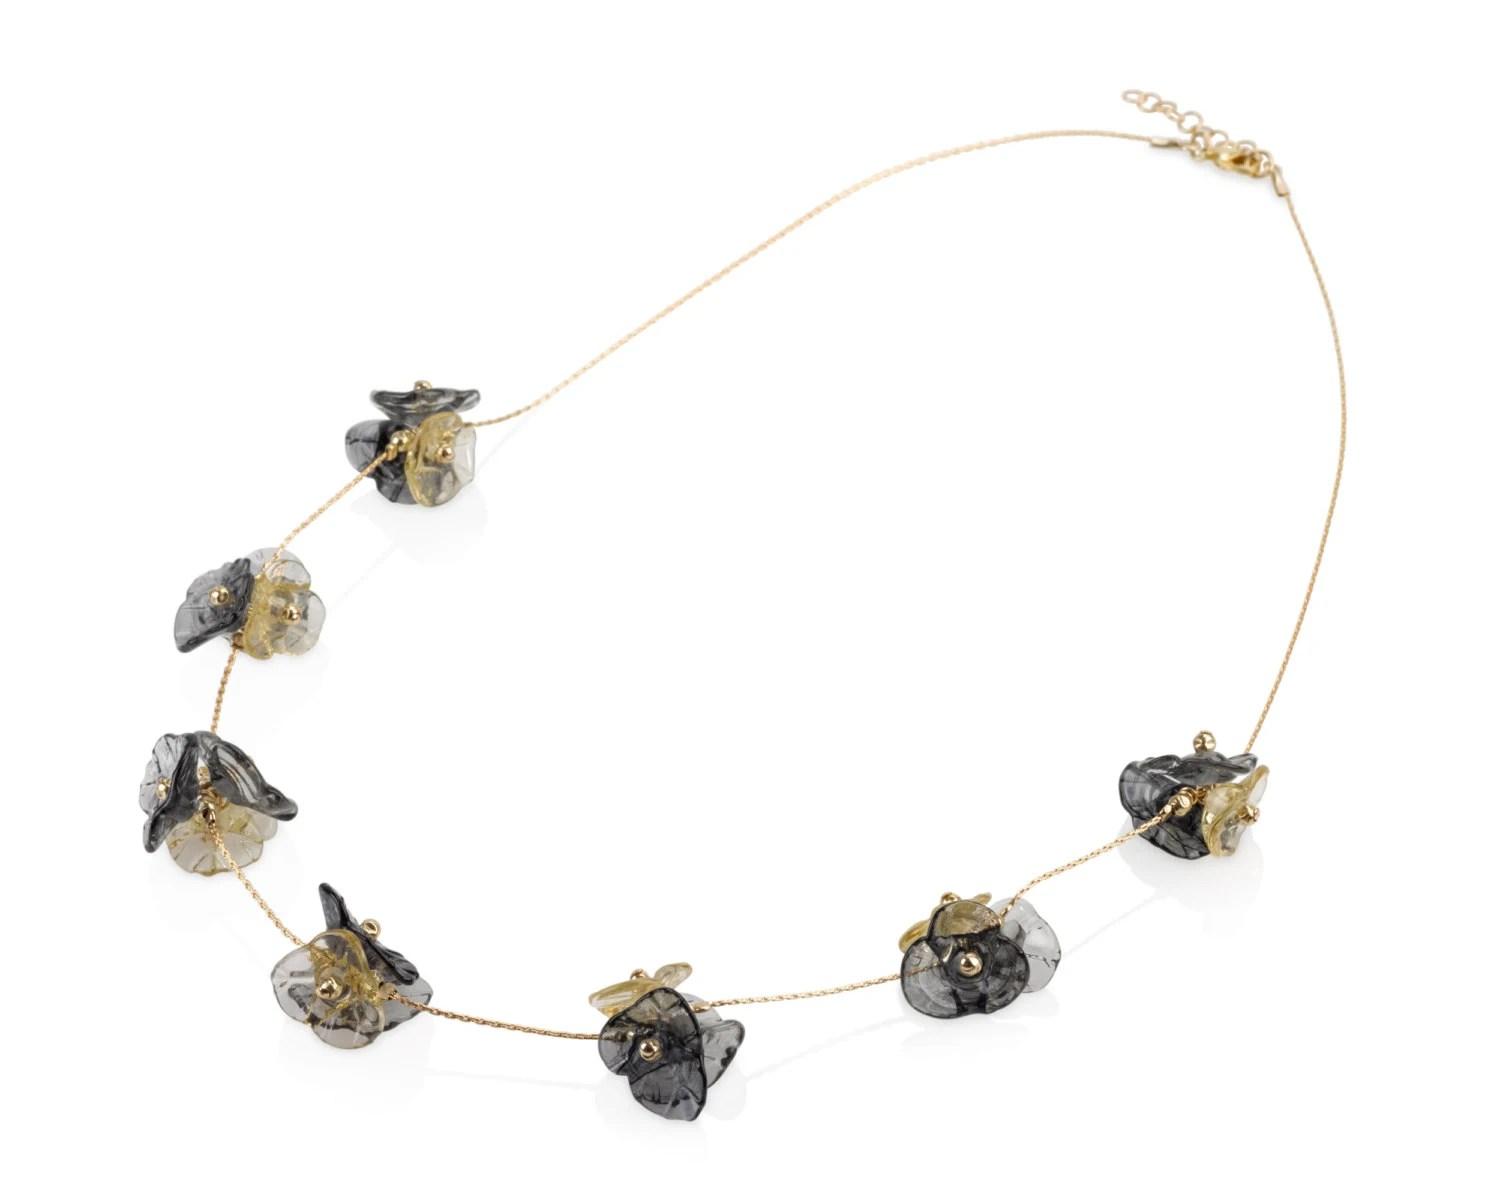 Golden-black lampwork beads and gold-filled handmade necklace